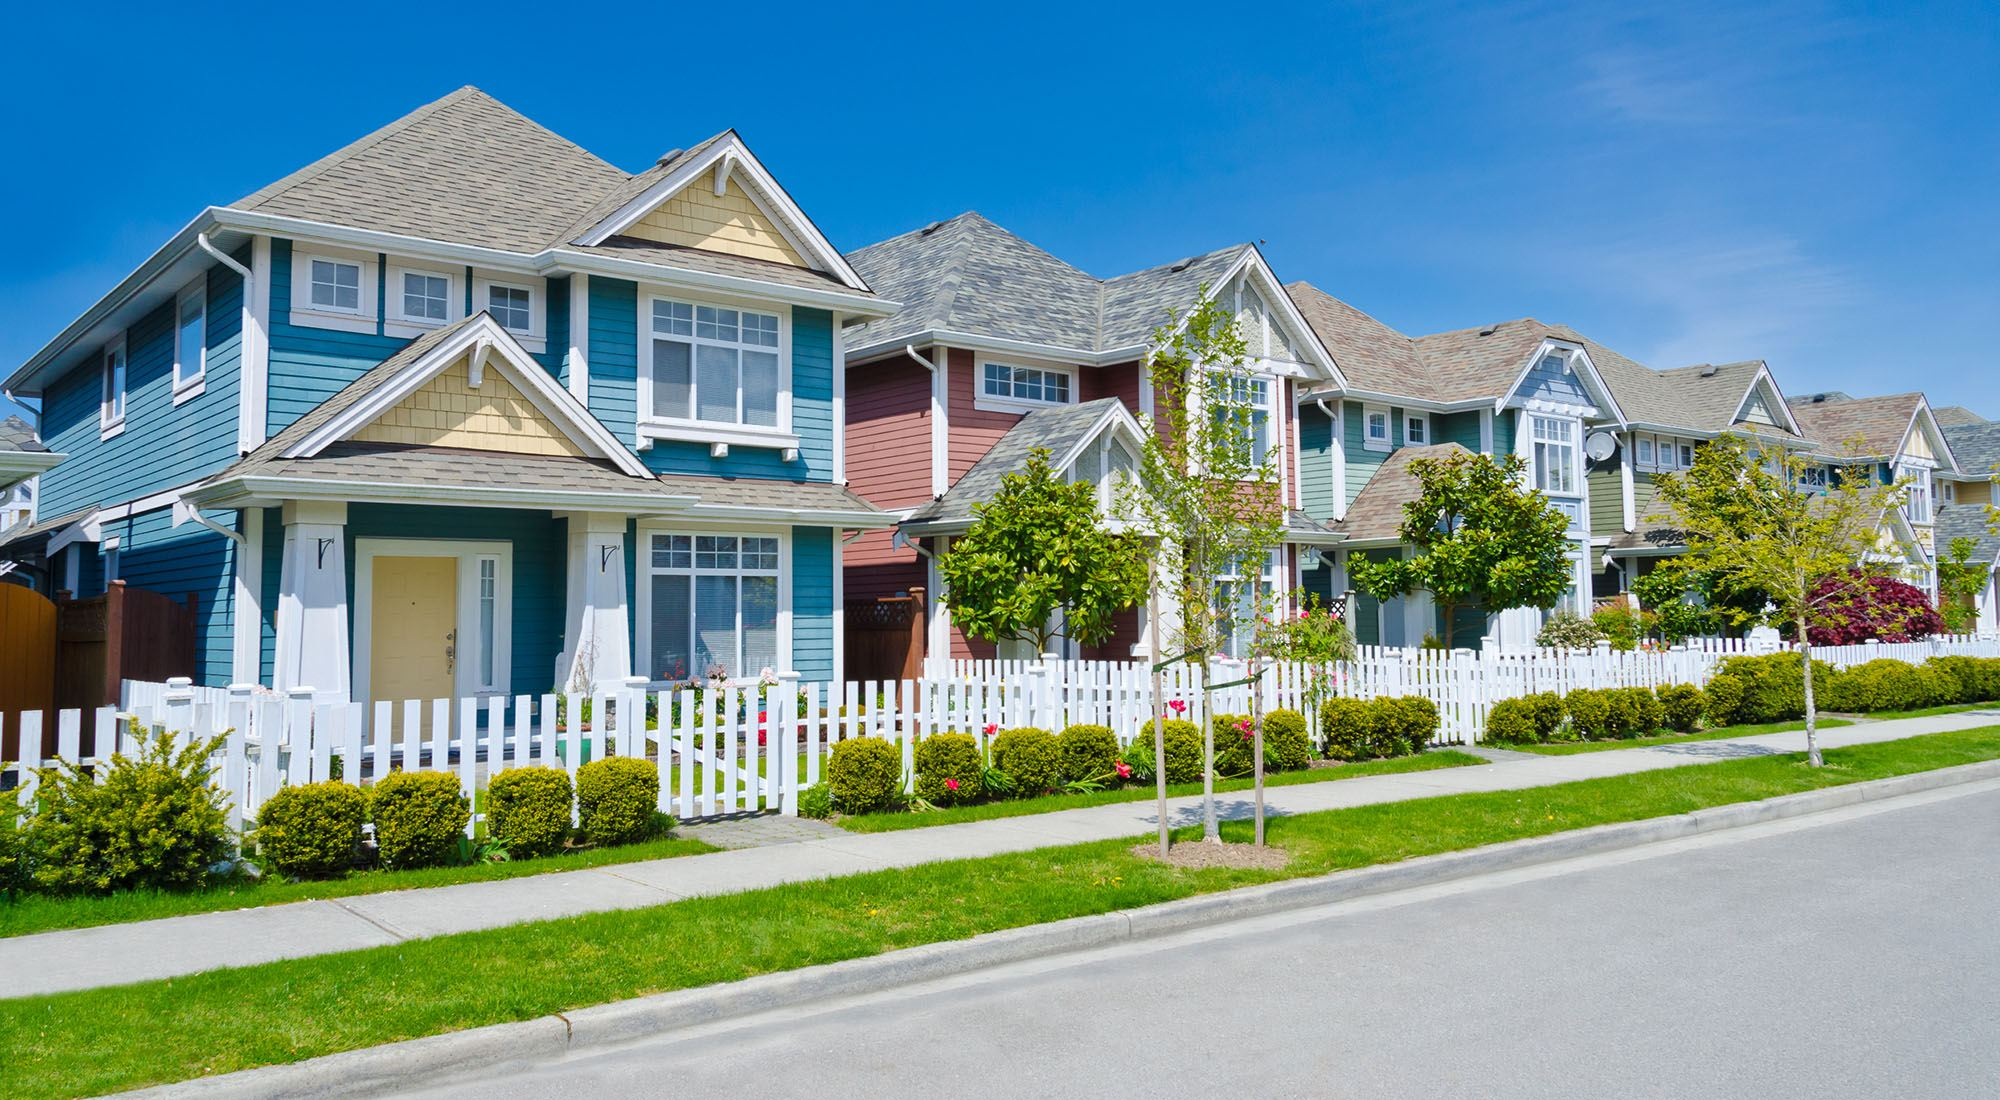 Real estate in Vancouver (romakoma/Shutterstock)